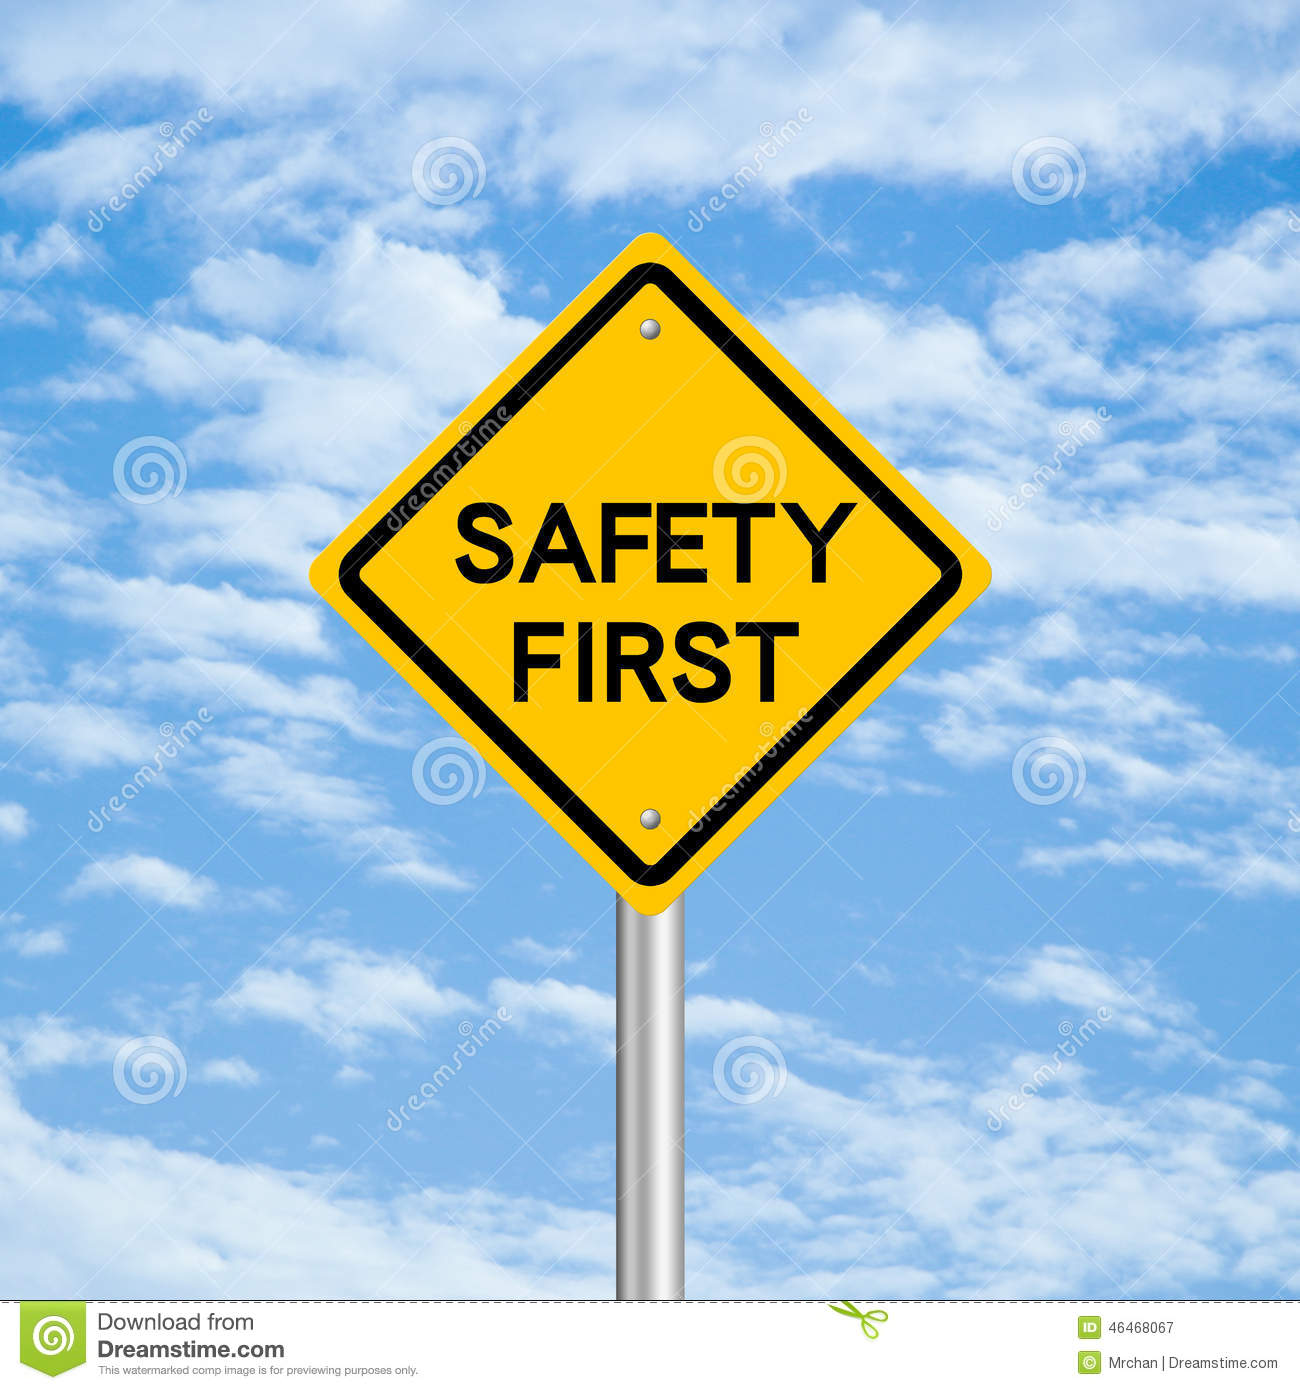 Safety First Stock Photos Download 10529 Images